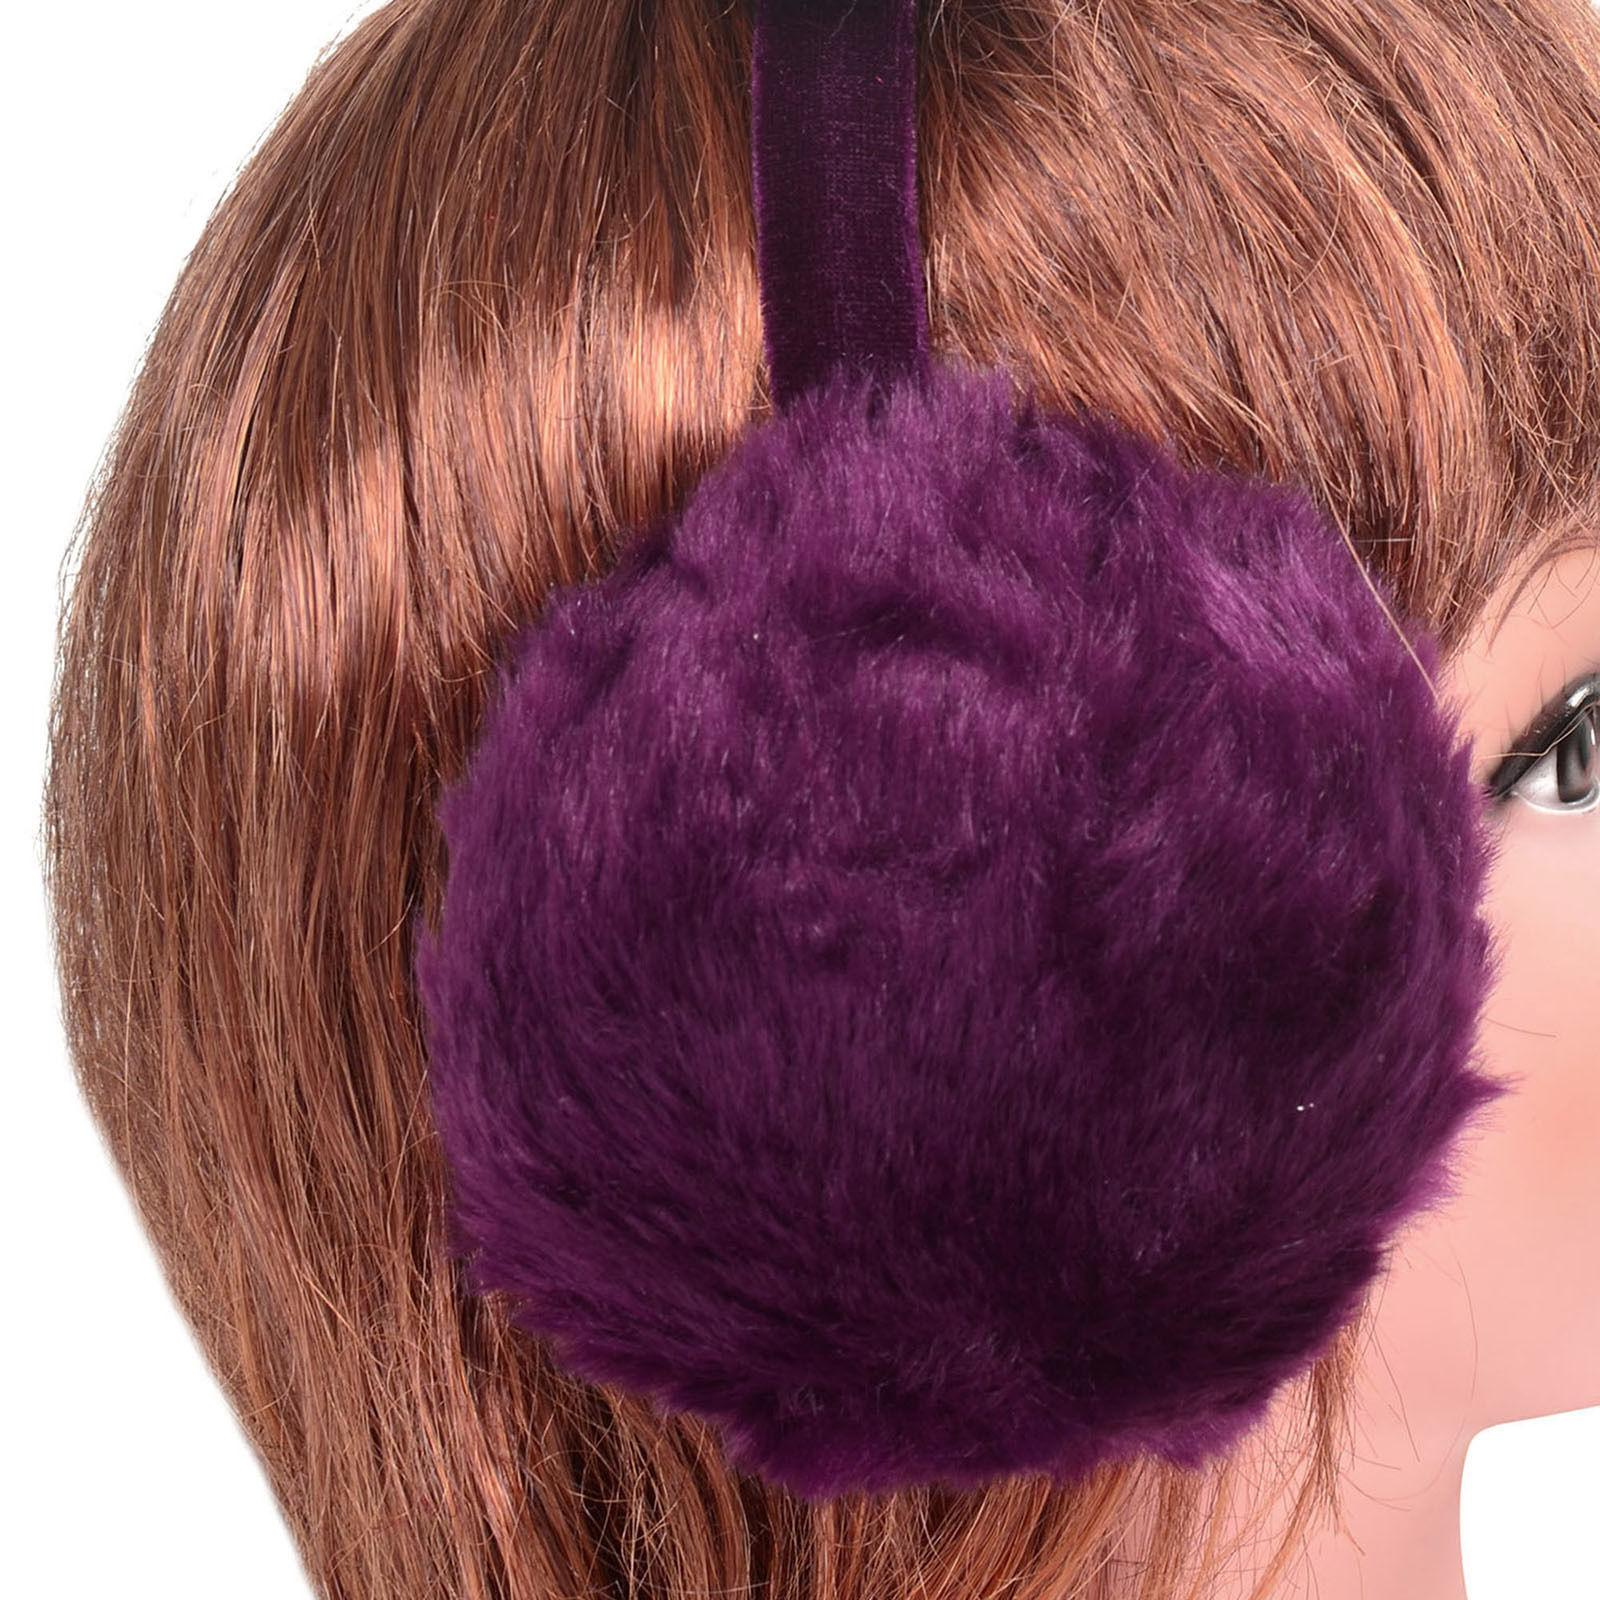 Women's Faux Fur Ear Fleece Winter Warmers Earmuff